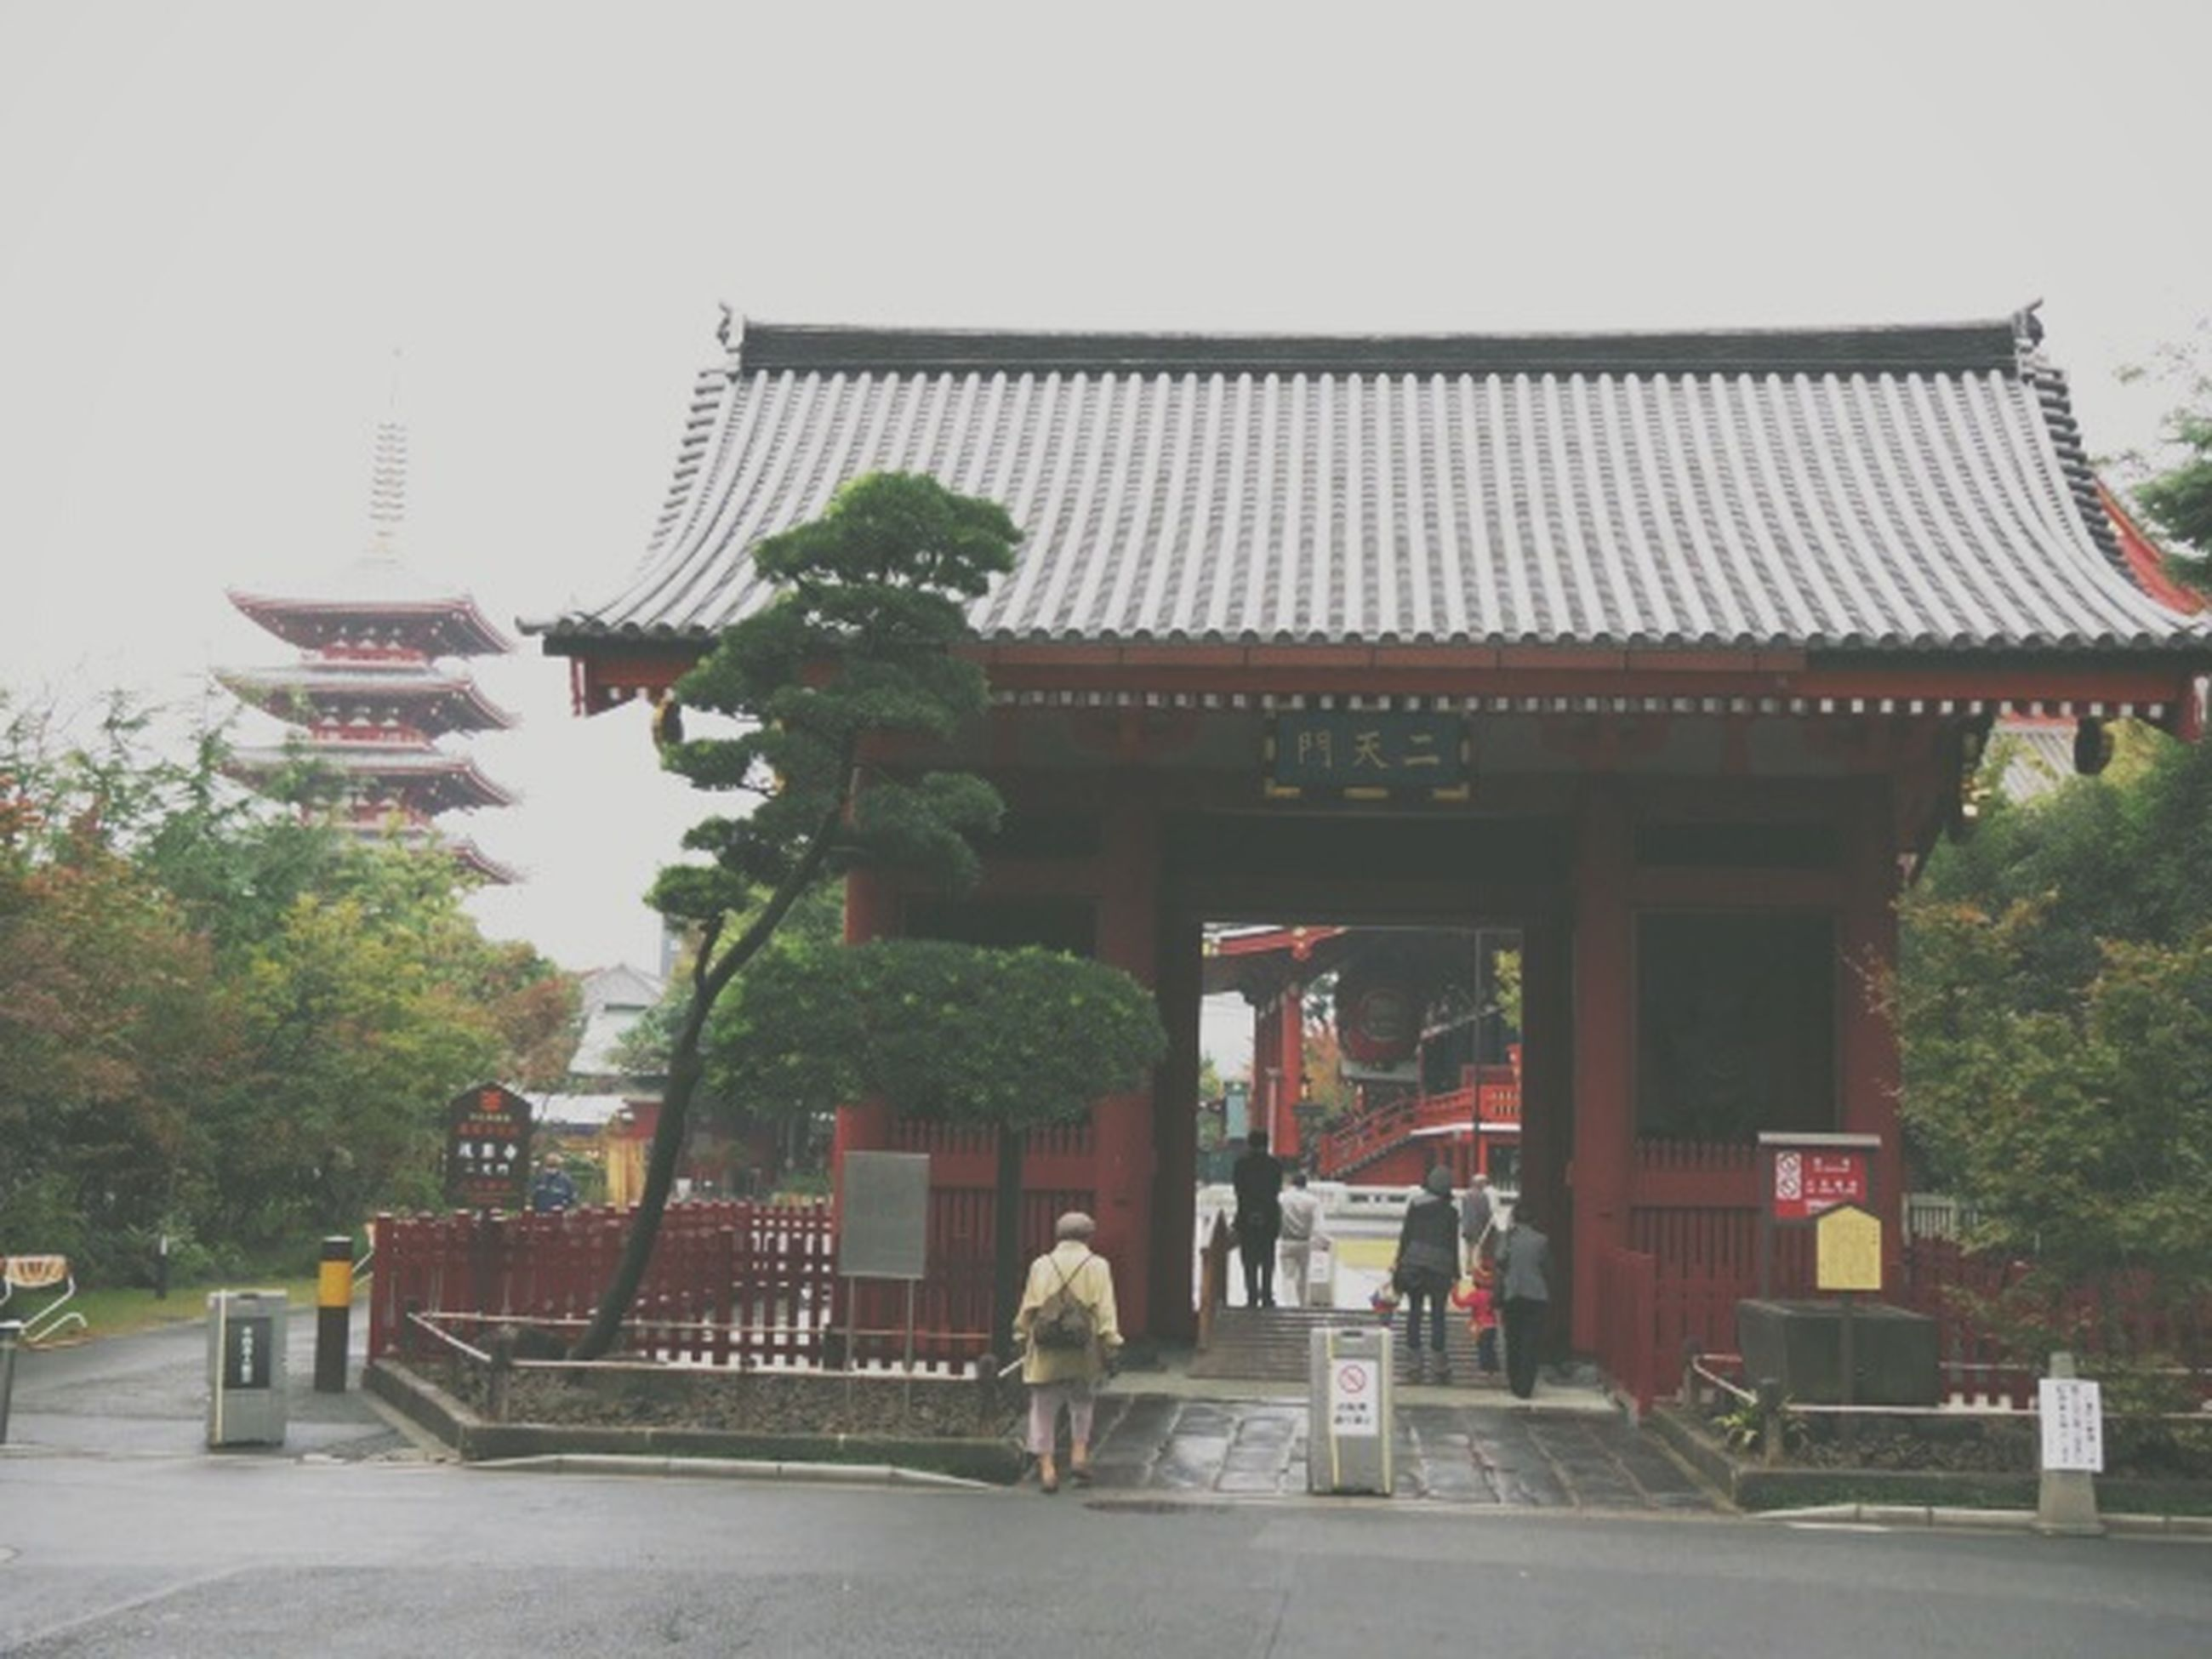 built structure, architecture, building exterior, tree, person, men, lifestyles, religion, temple - building, place of worship, sky, walking, leisure activity, steps, railing, travel destinations, incidental people, spirituality, travel